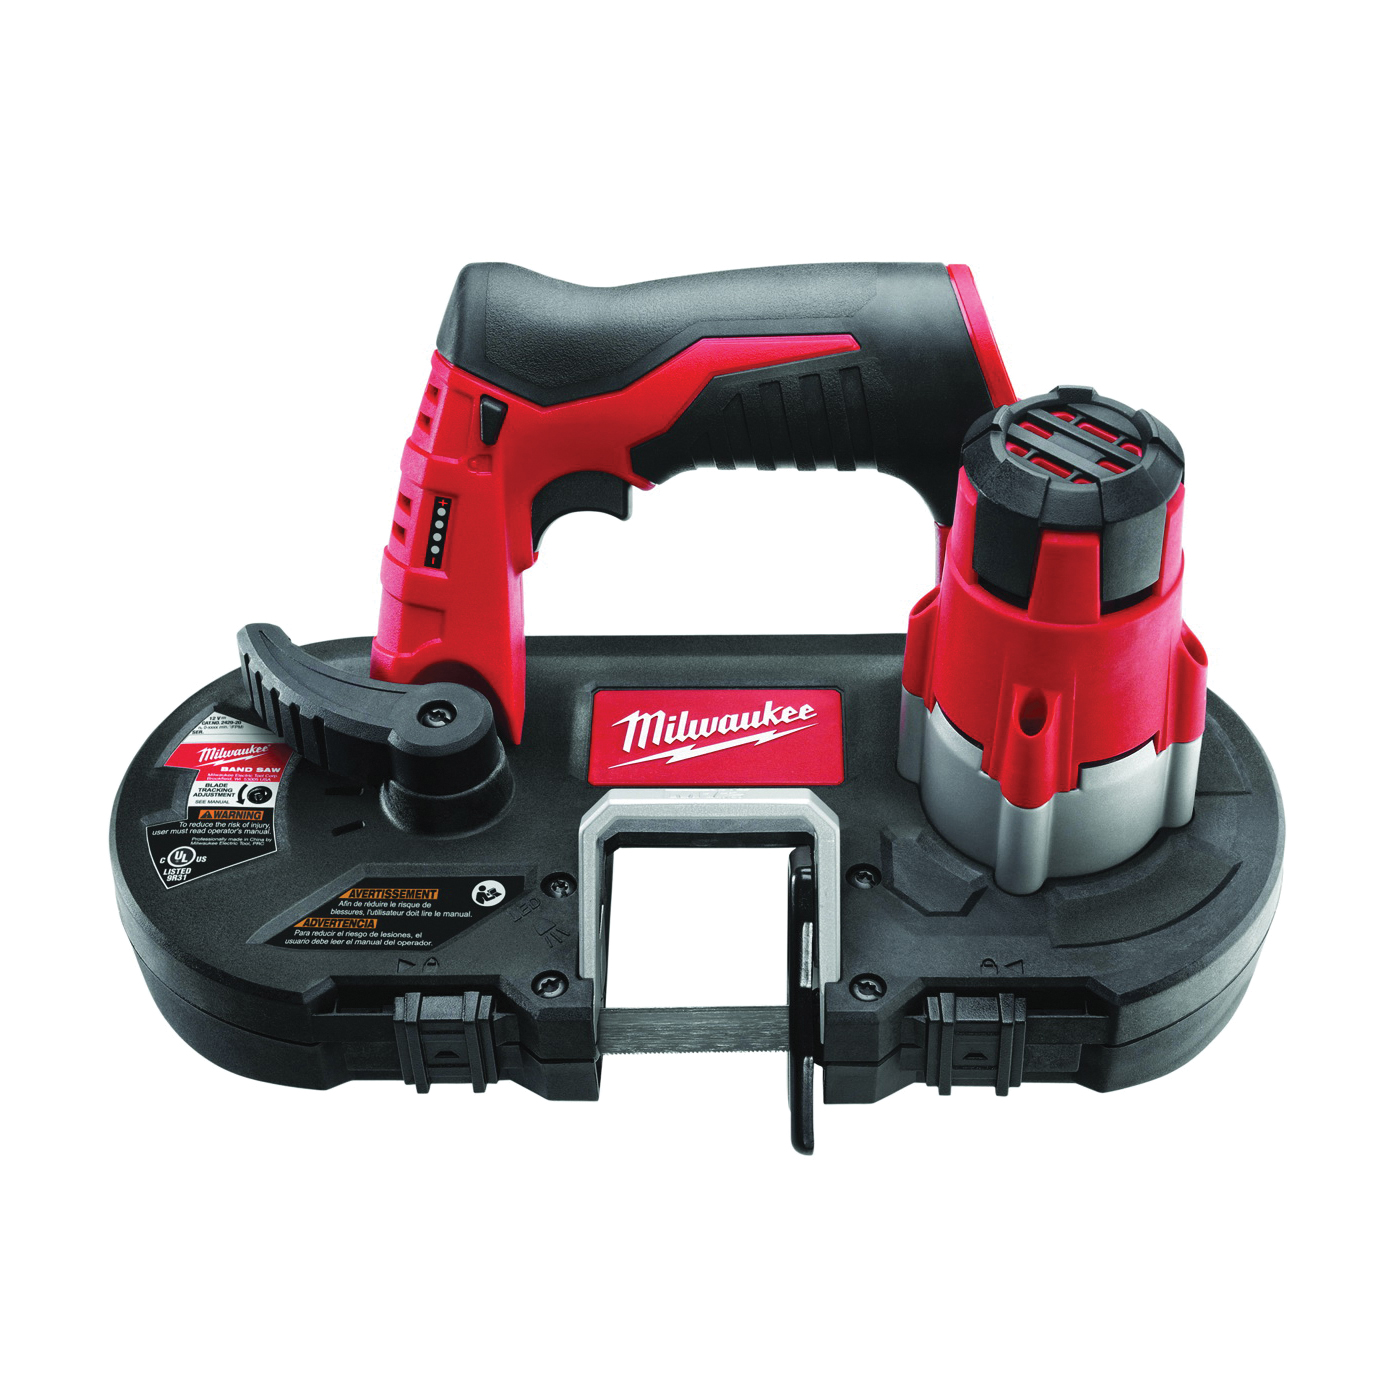 Picture of Milwaukee 2429-20 Cordless Band Saw, Bare Tool, 12 V Battery, 27 in L Blade, 1/2 in W Blade, 1-5/8 in D Throat